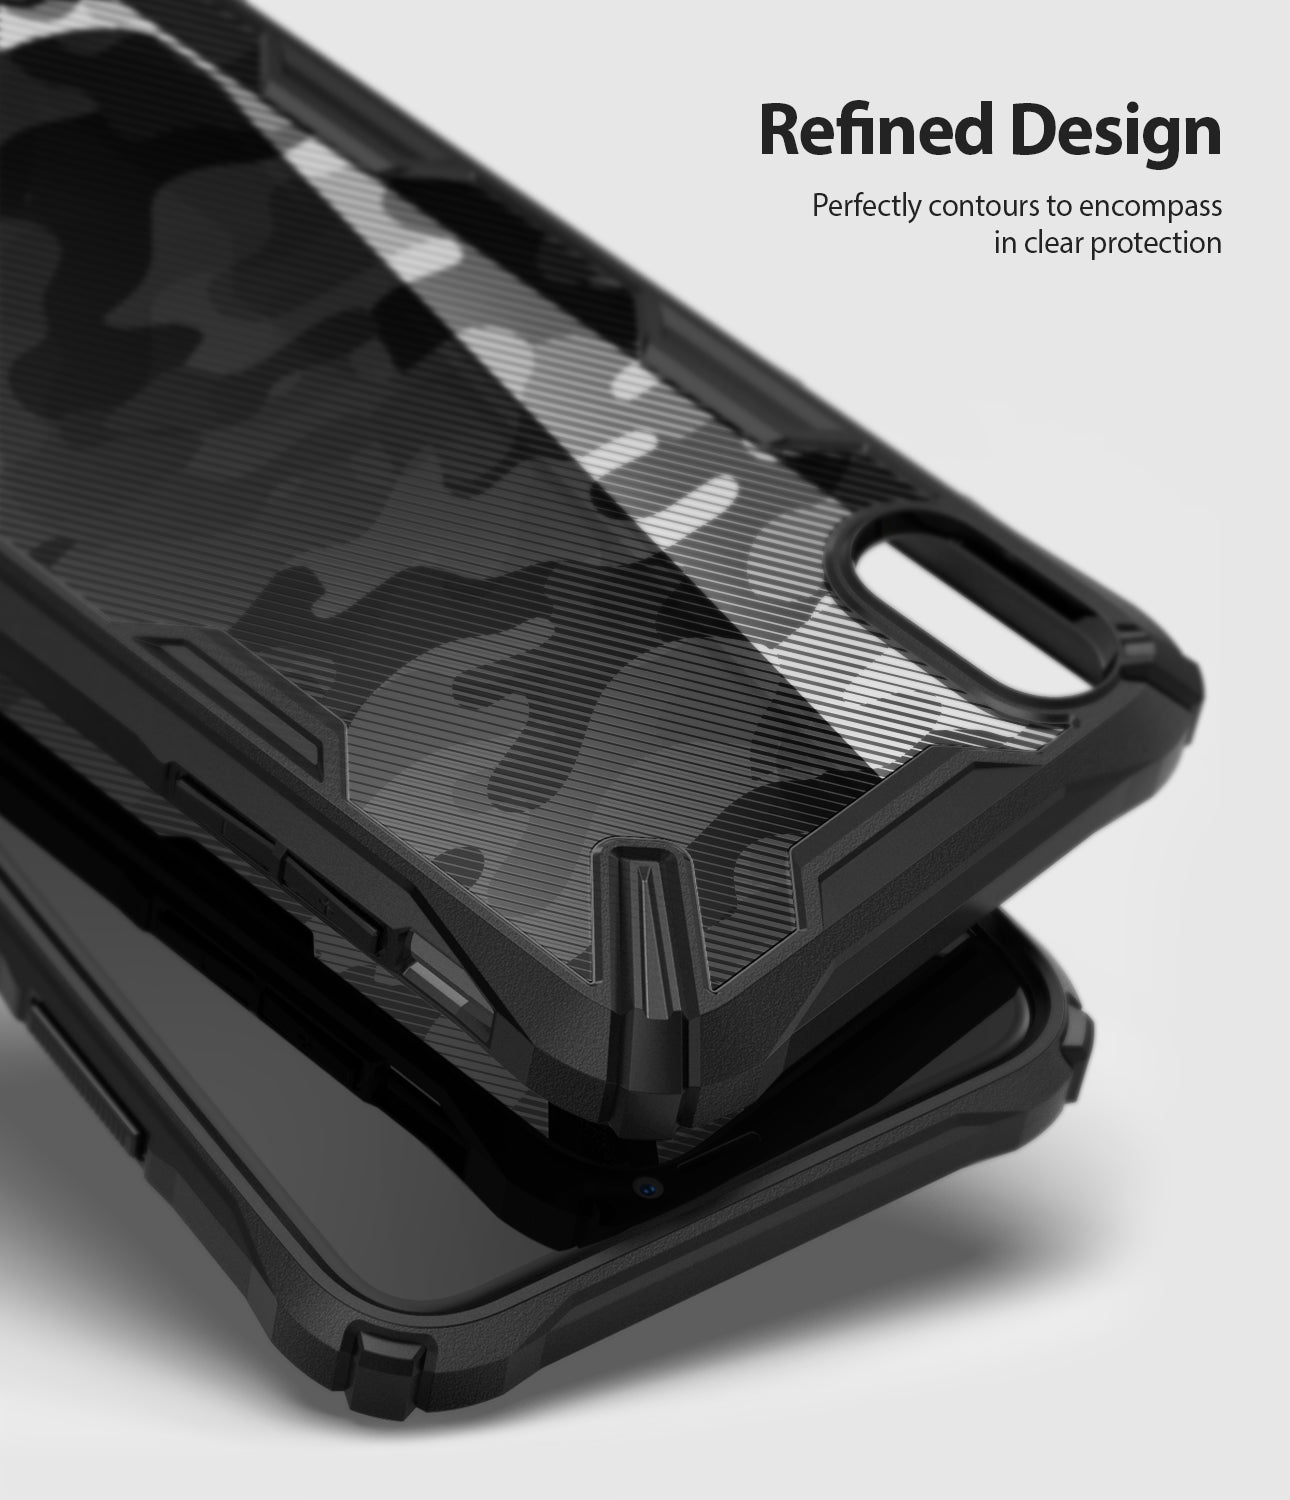 ringke fusion-x for iphone xr case cover refined design